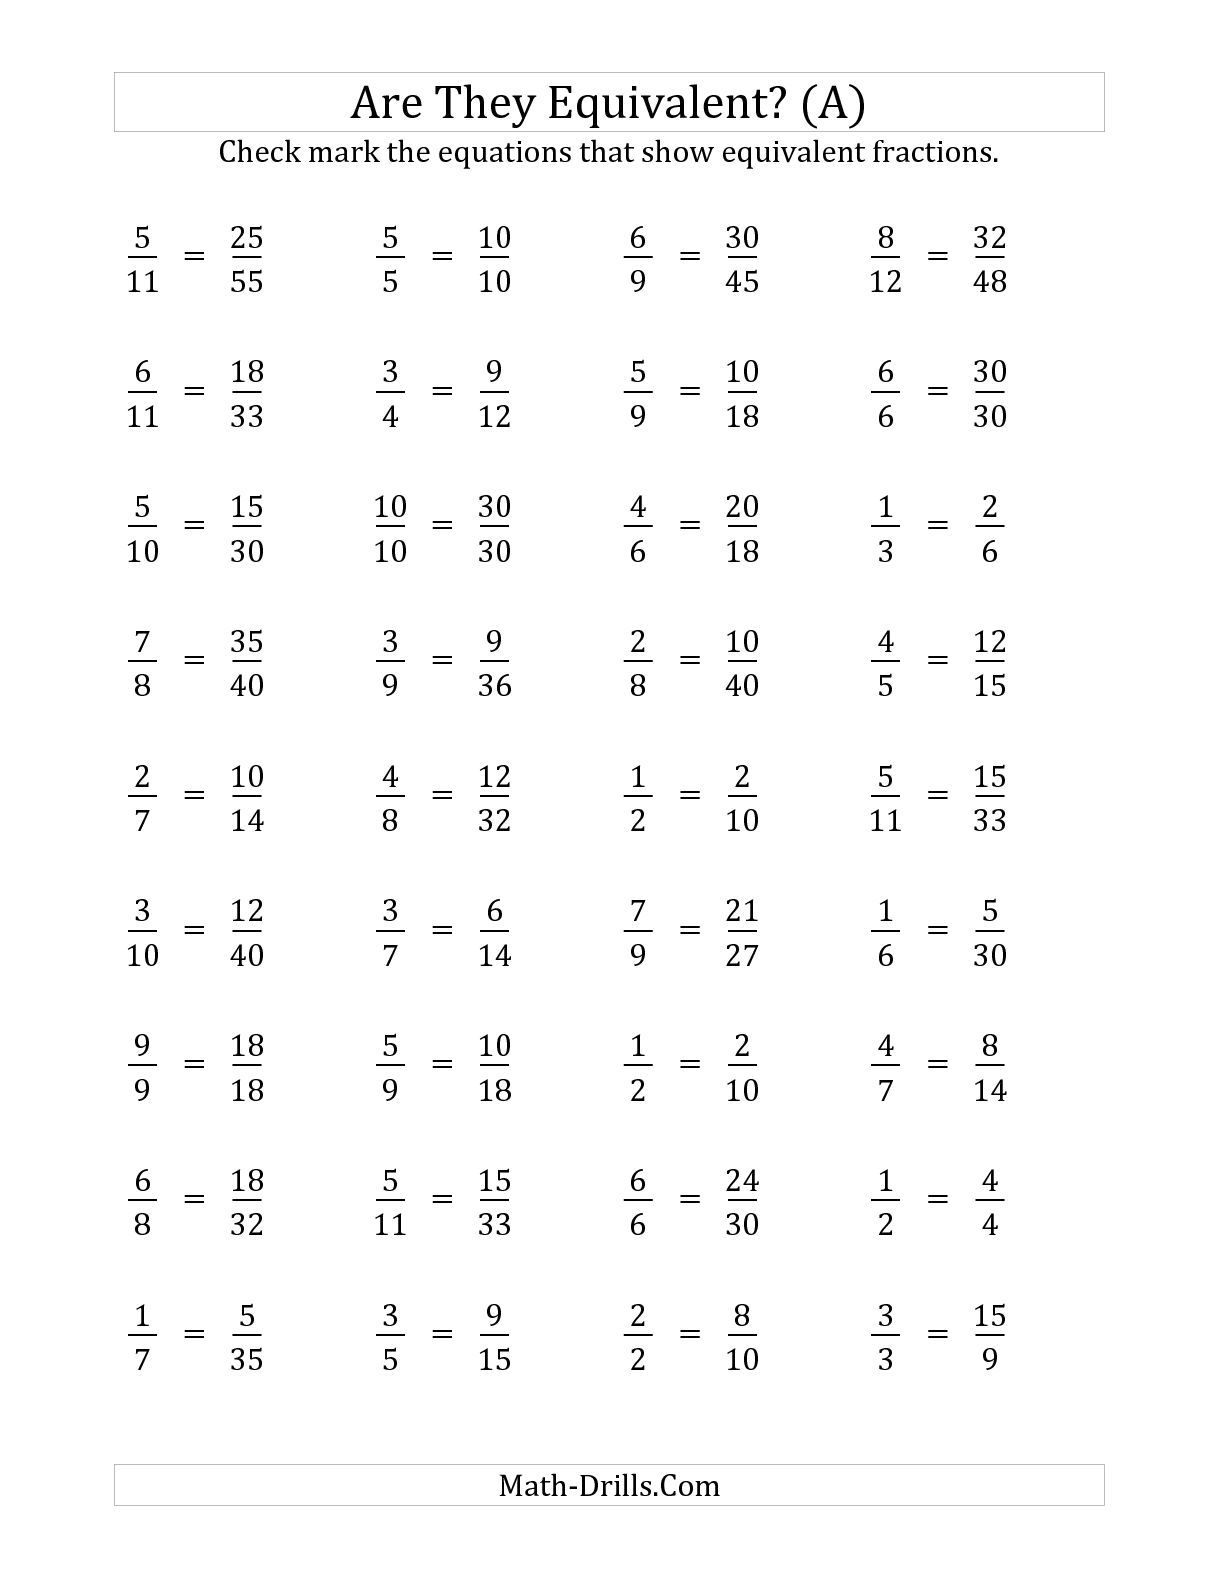 The Are These Fractions Equivalent Multiplier Range 2 To 5 A Fractions